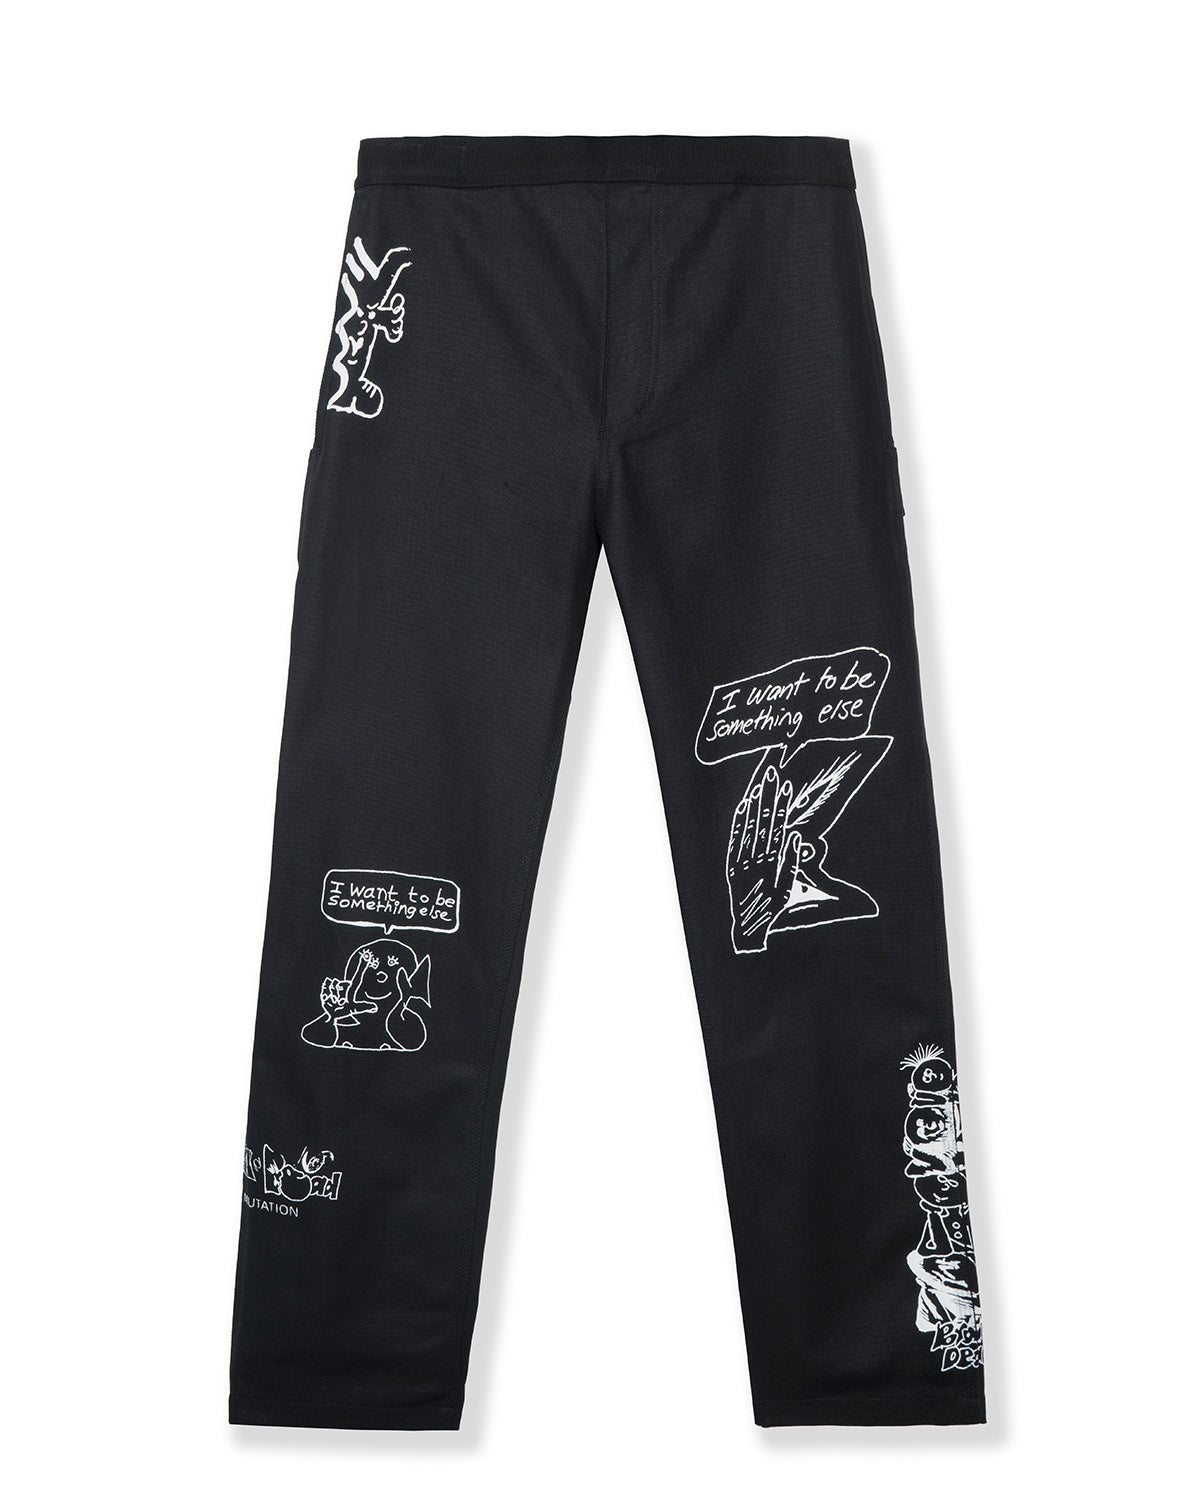 Hard/Software Velcro Printed Carpenter Pant - Black